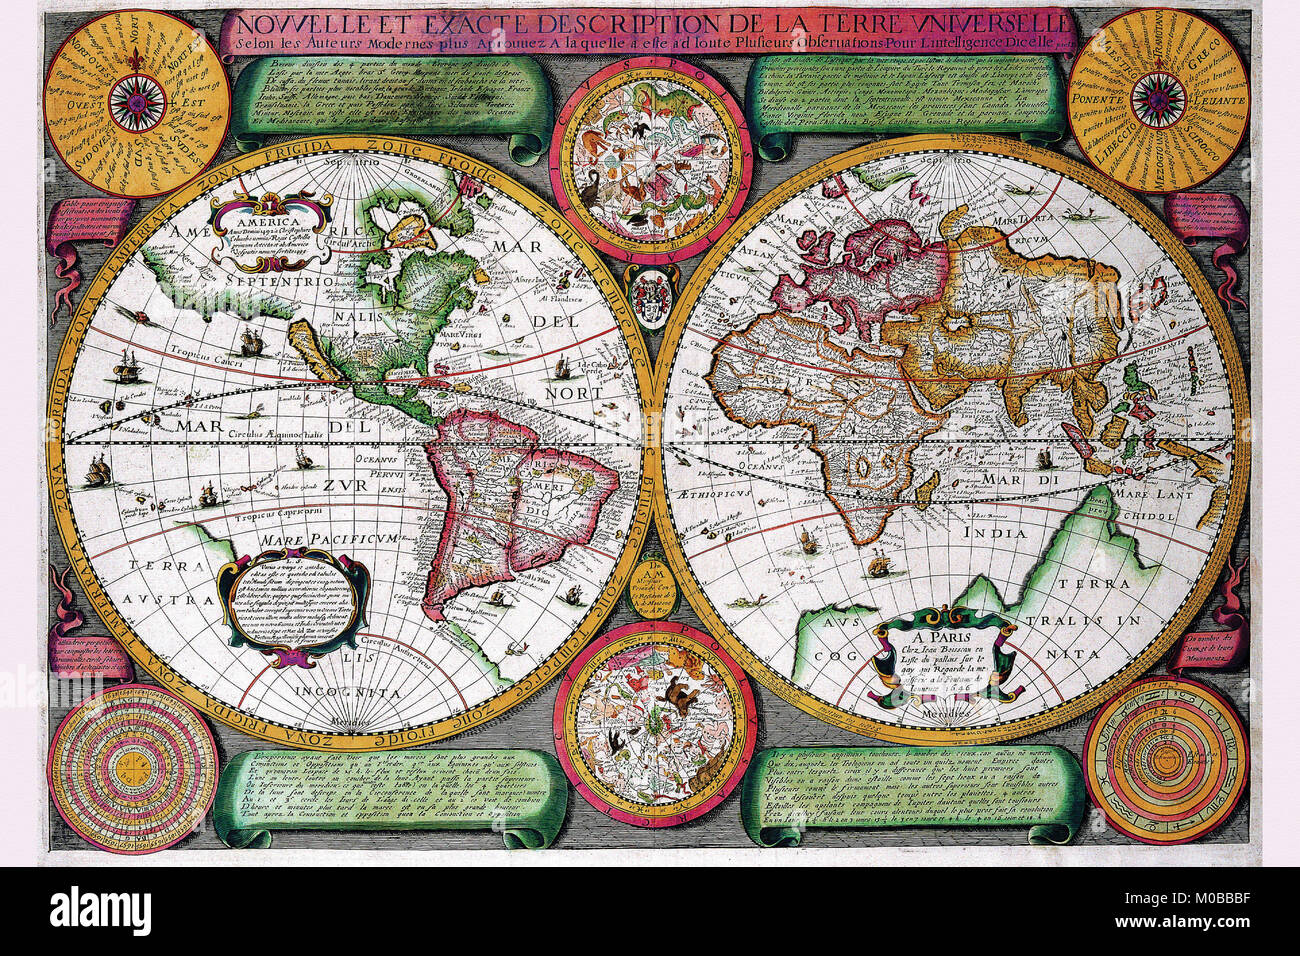 Stereographic world map of the eastern western hemispheres stock stereographic world map of the eastern western hemispheres gumiabroncs Images